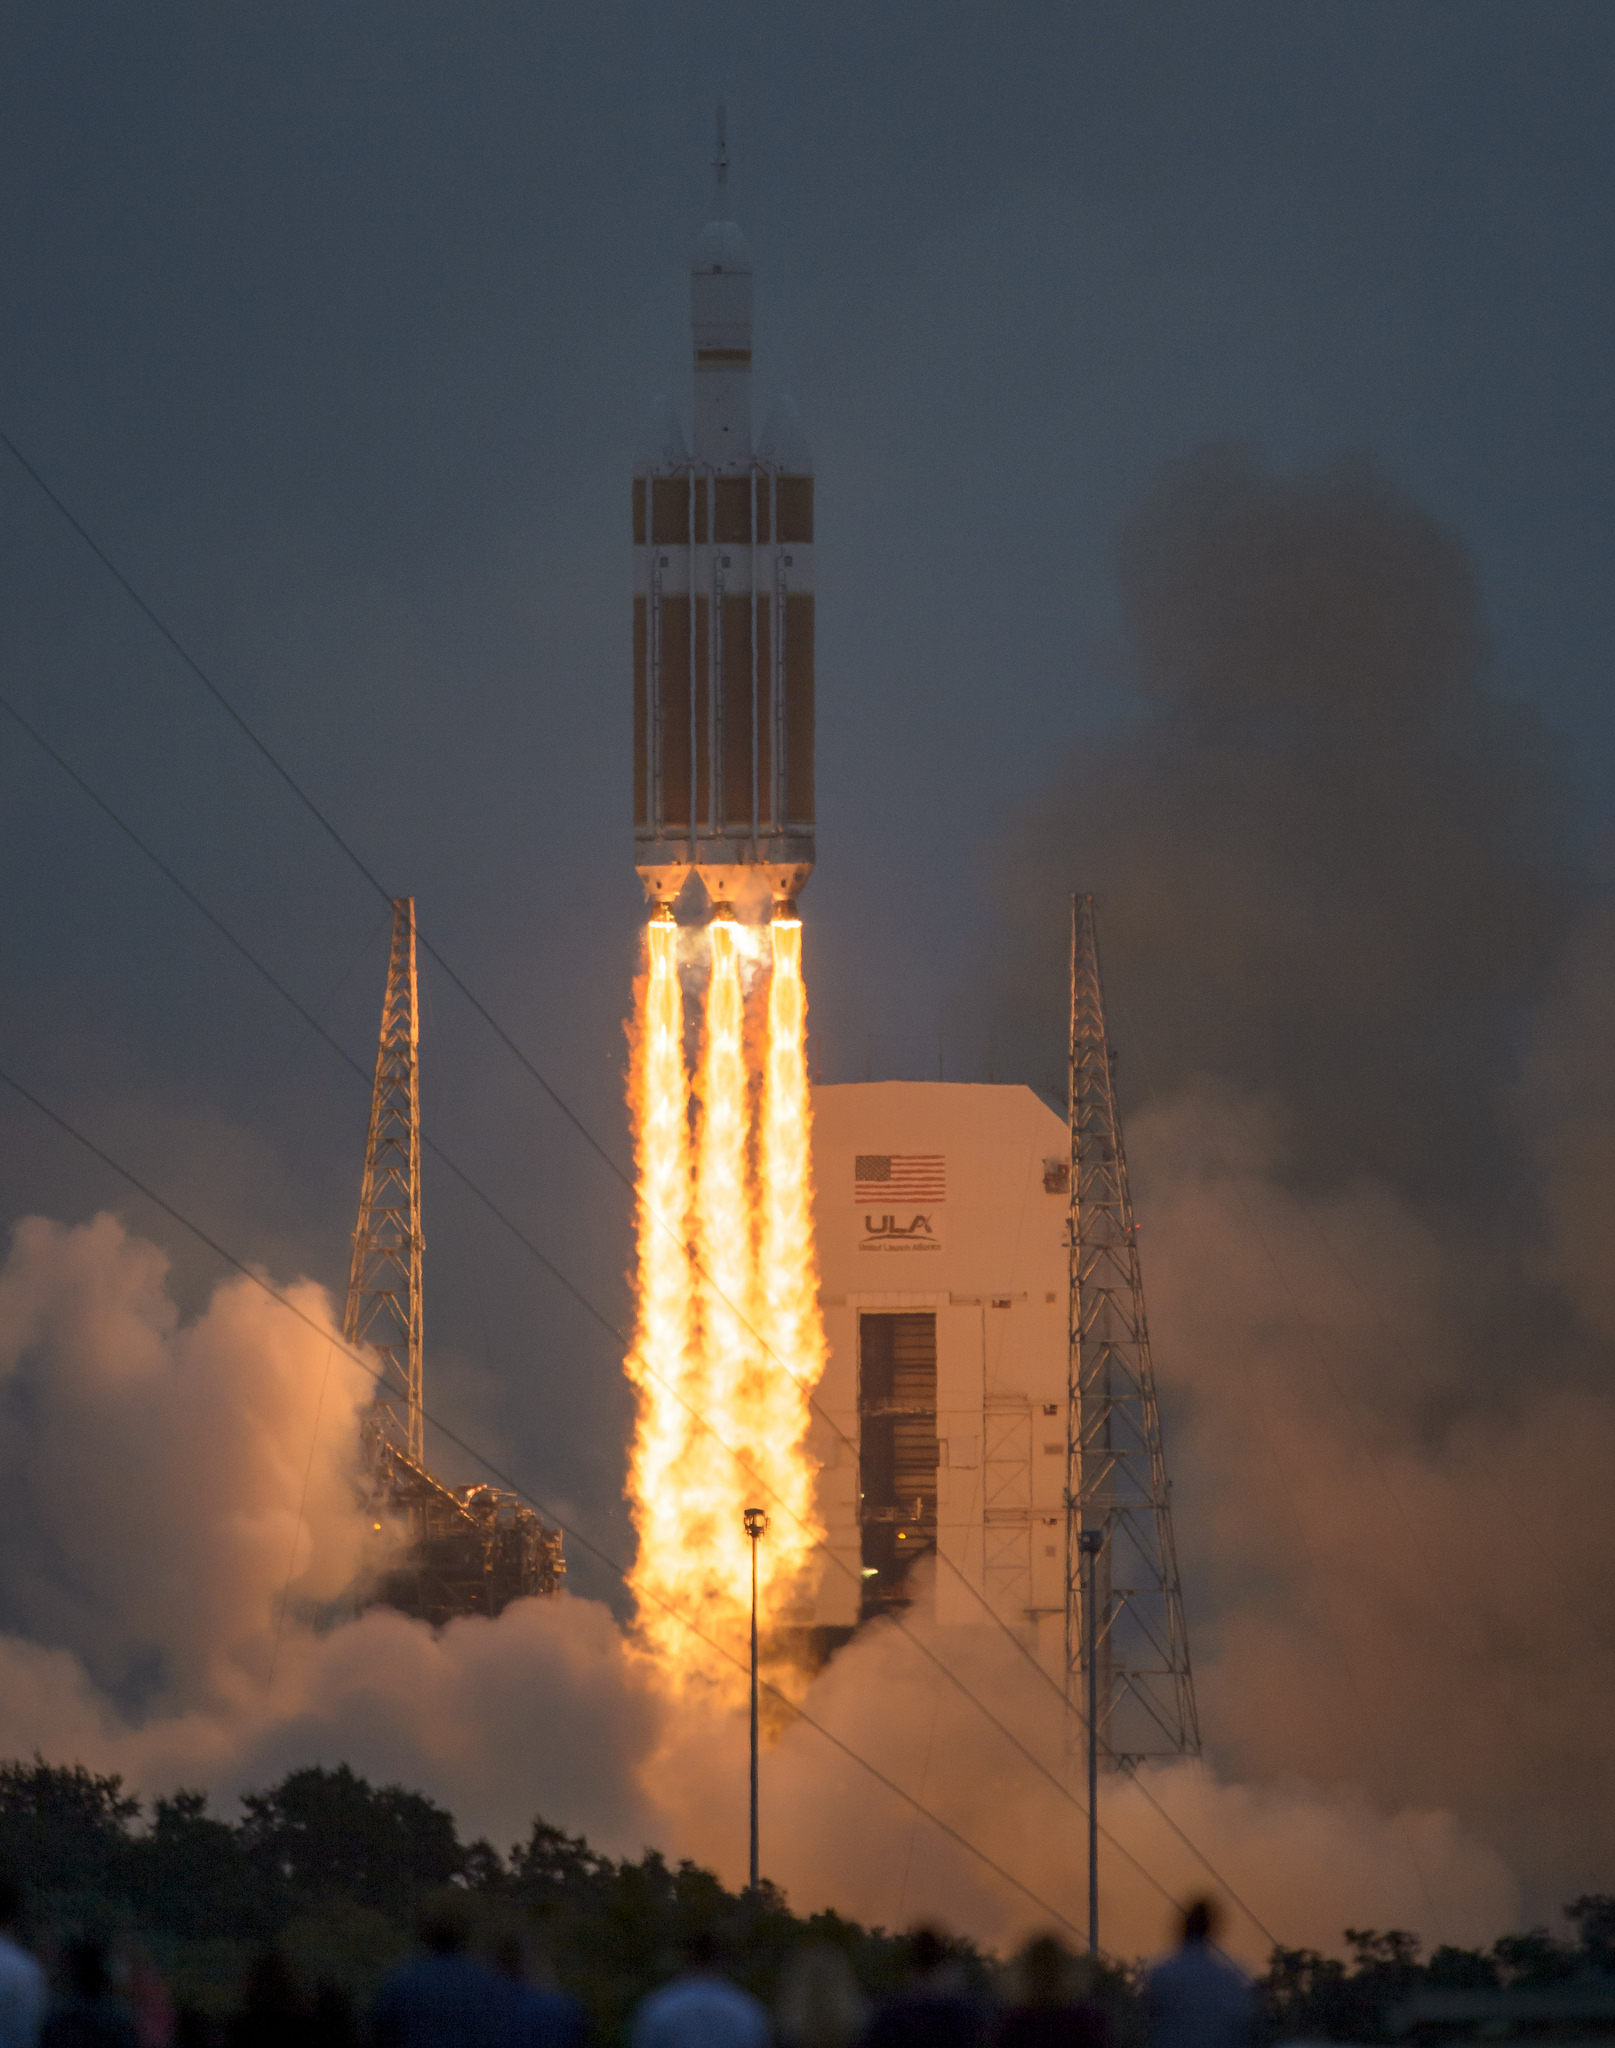 A Year After Maiden Voyage, Orion Progress Continues | NASA